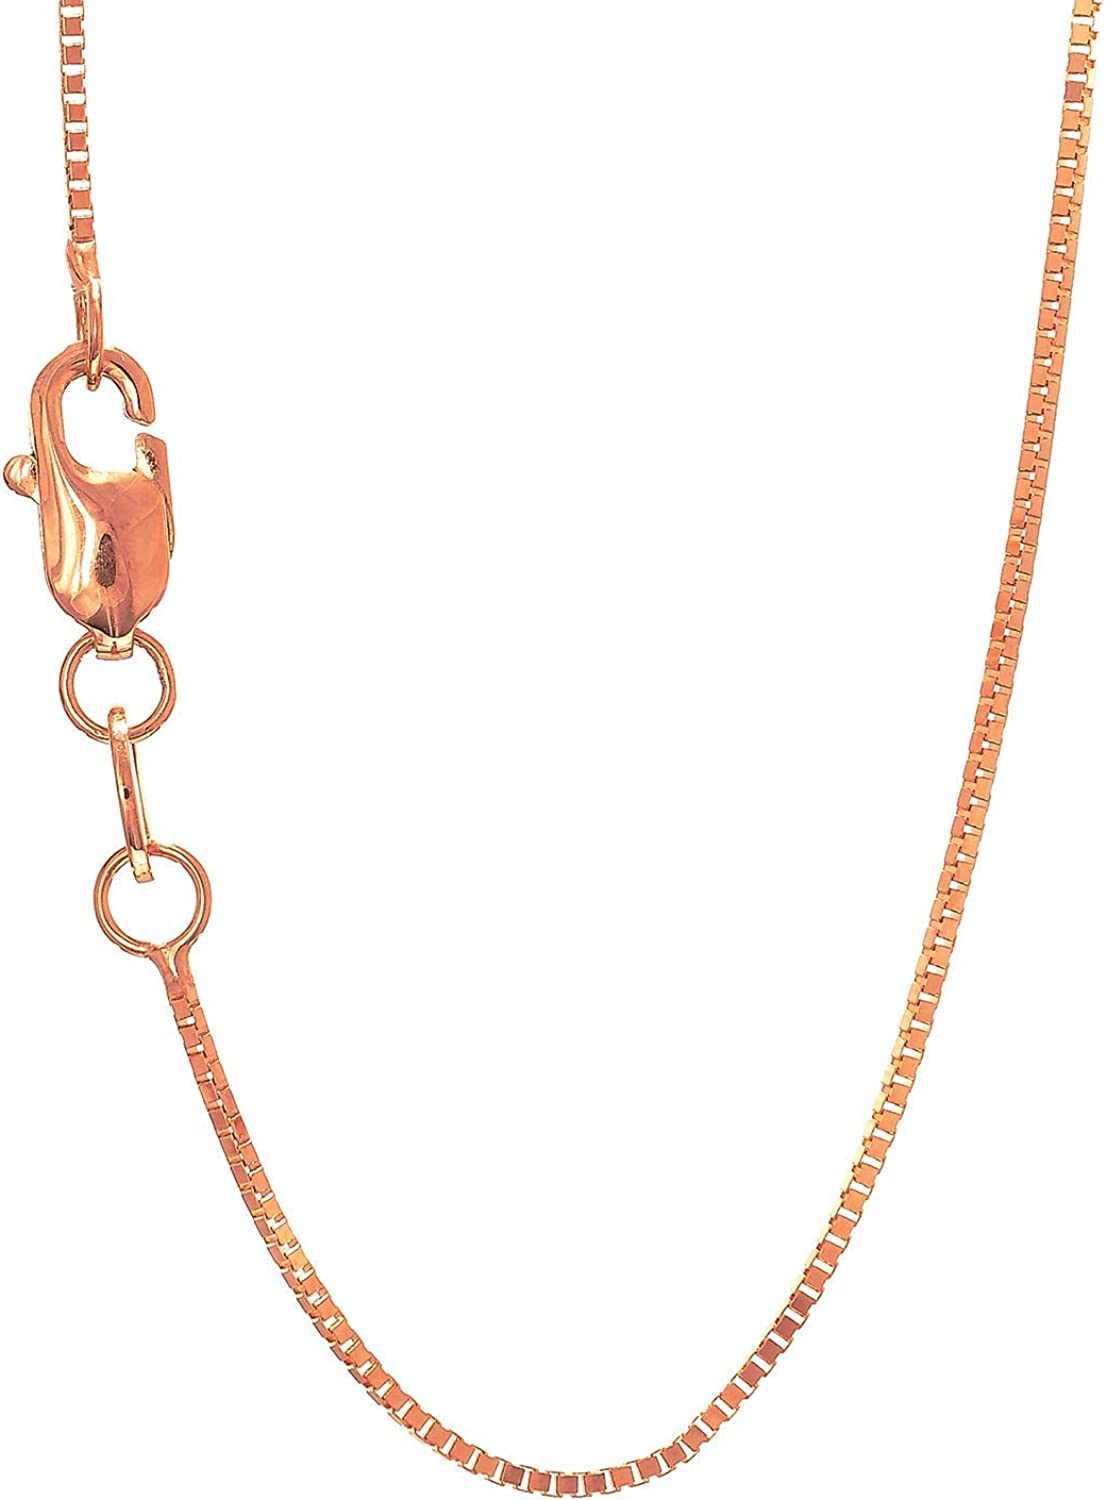 JewelStop 10k Solid Gold Yellow White & Rose 0.45mm Box Chain Necklace, Lobster Claw 18''